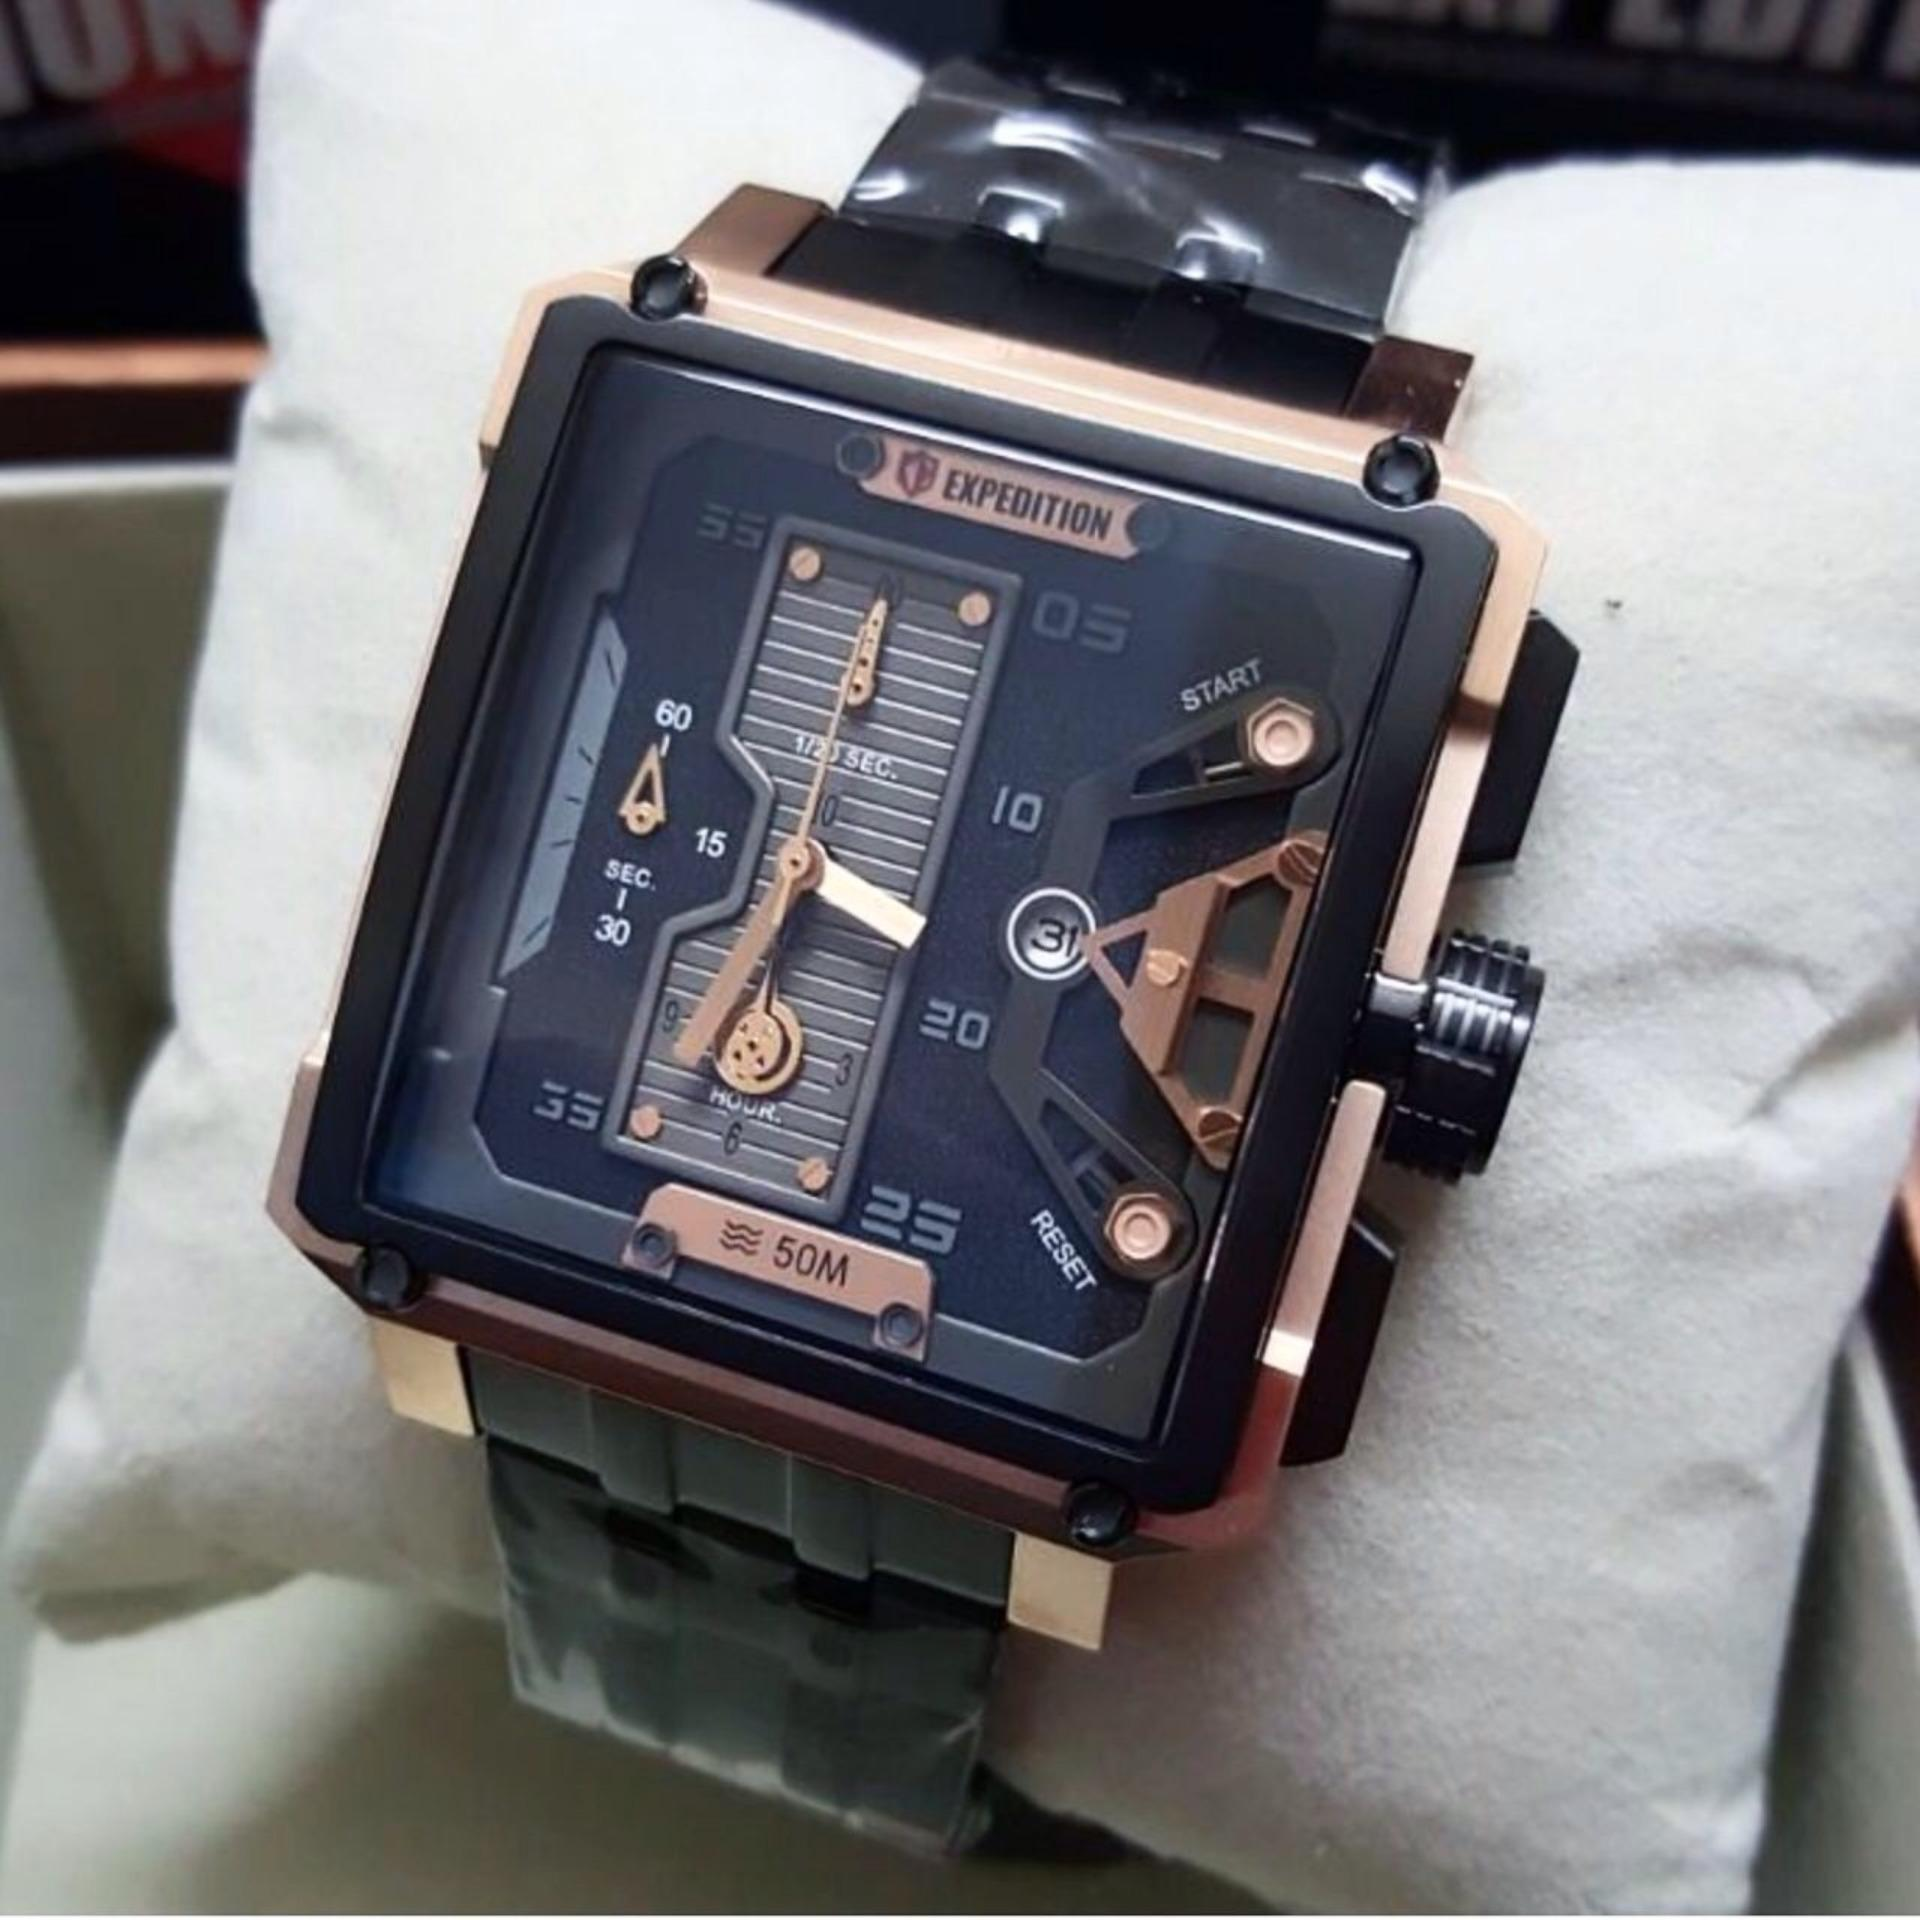 Expedition 6699 Rose Gold Original Jam Tangan Pria Daftar Harga E6699 Brown Black E6292m Stainless Steel Hitam Rosegold